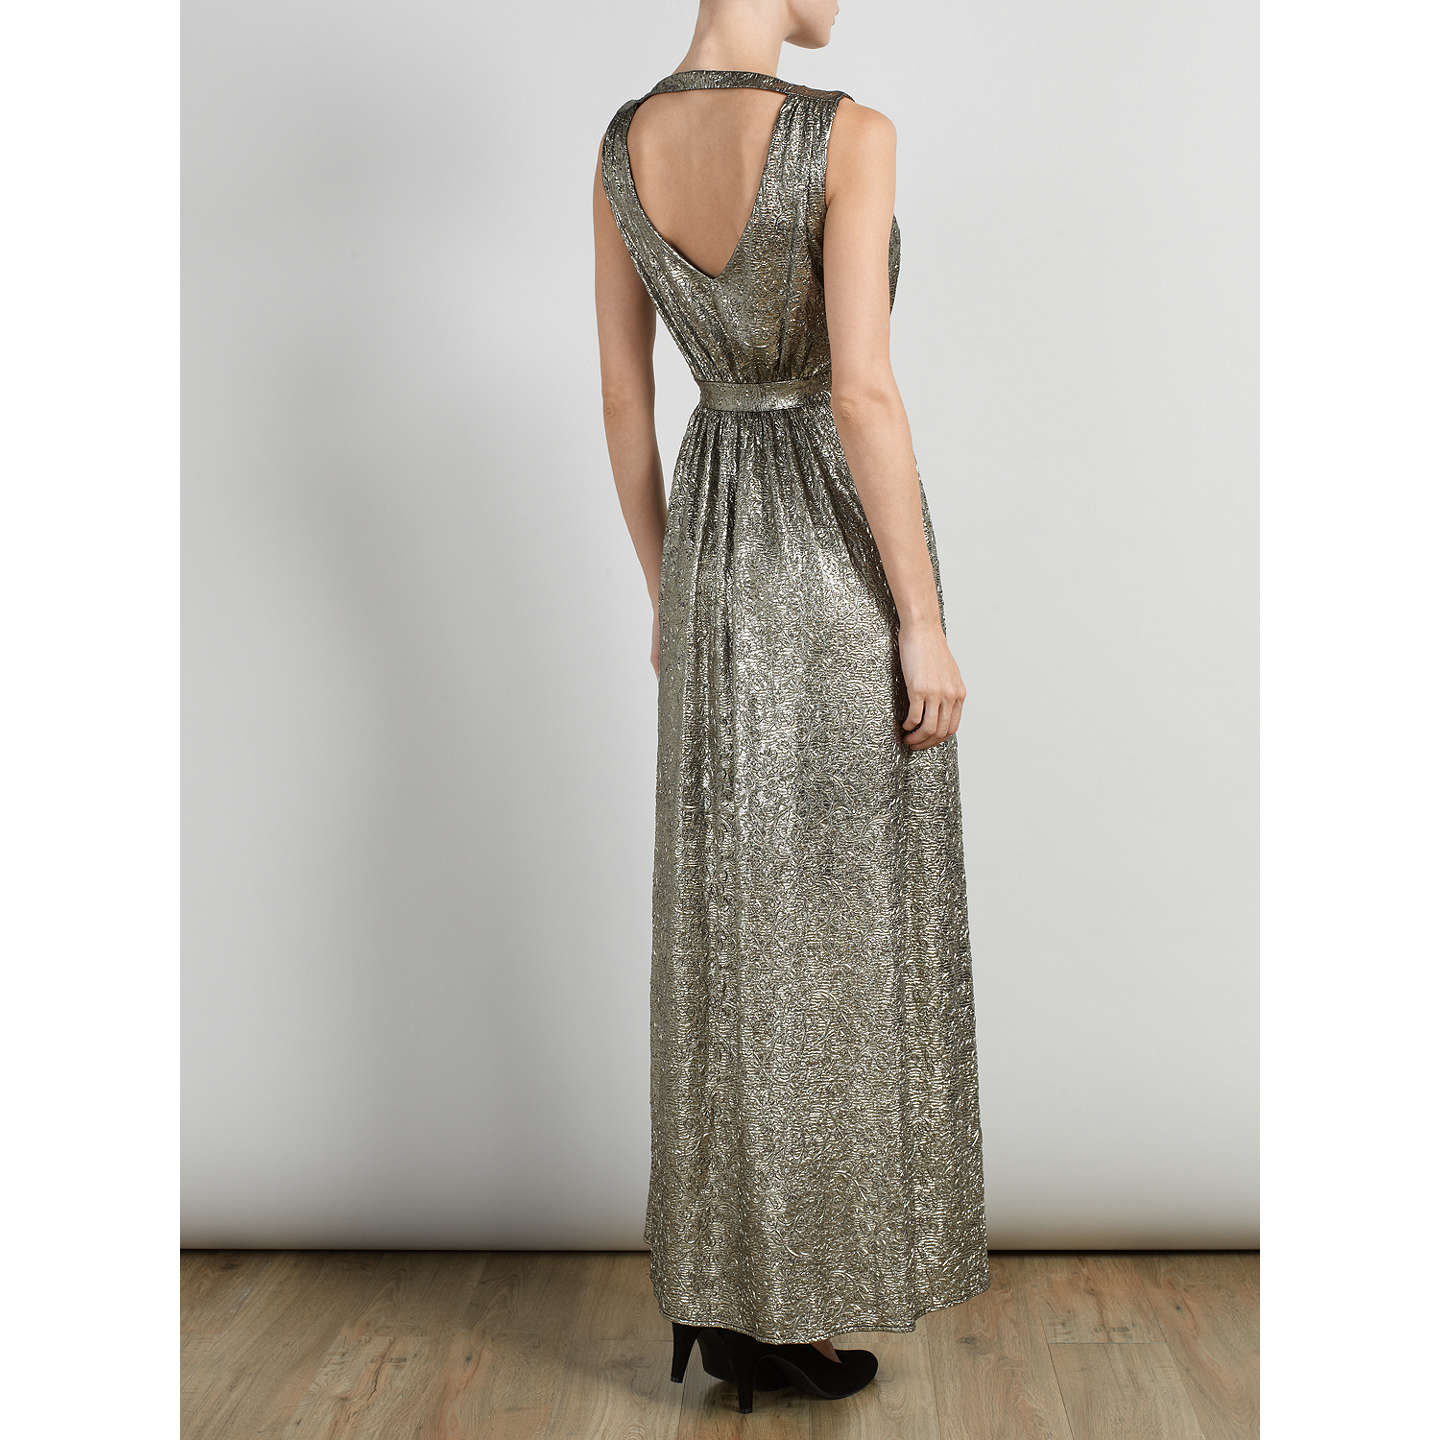 BuySomerset by Alice Temperley Lurex Maxi Dress, Gold, 6 Online at johnlewis.com